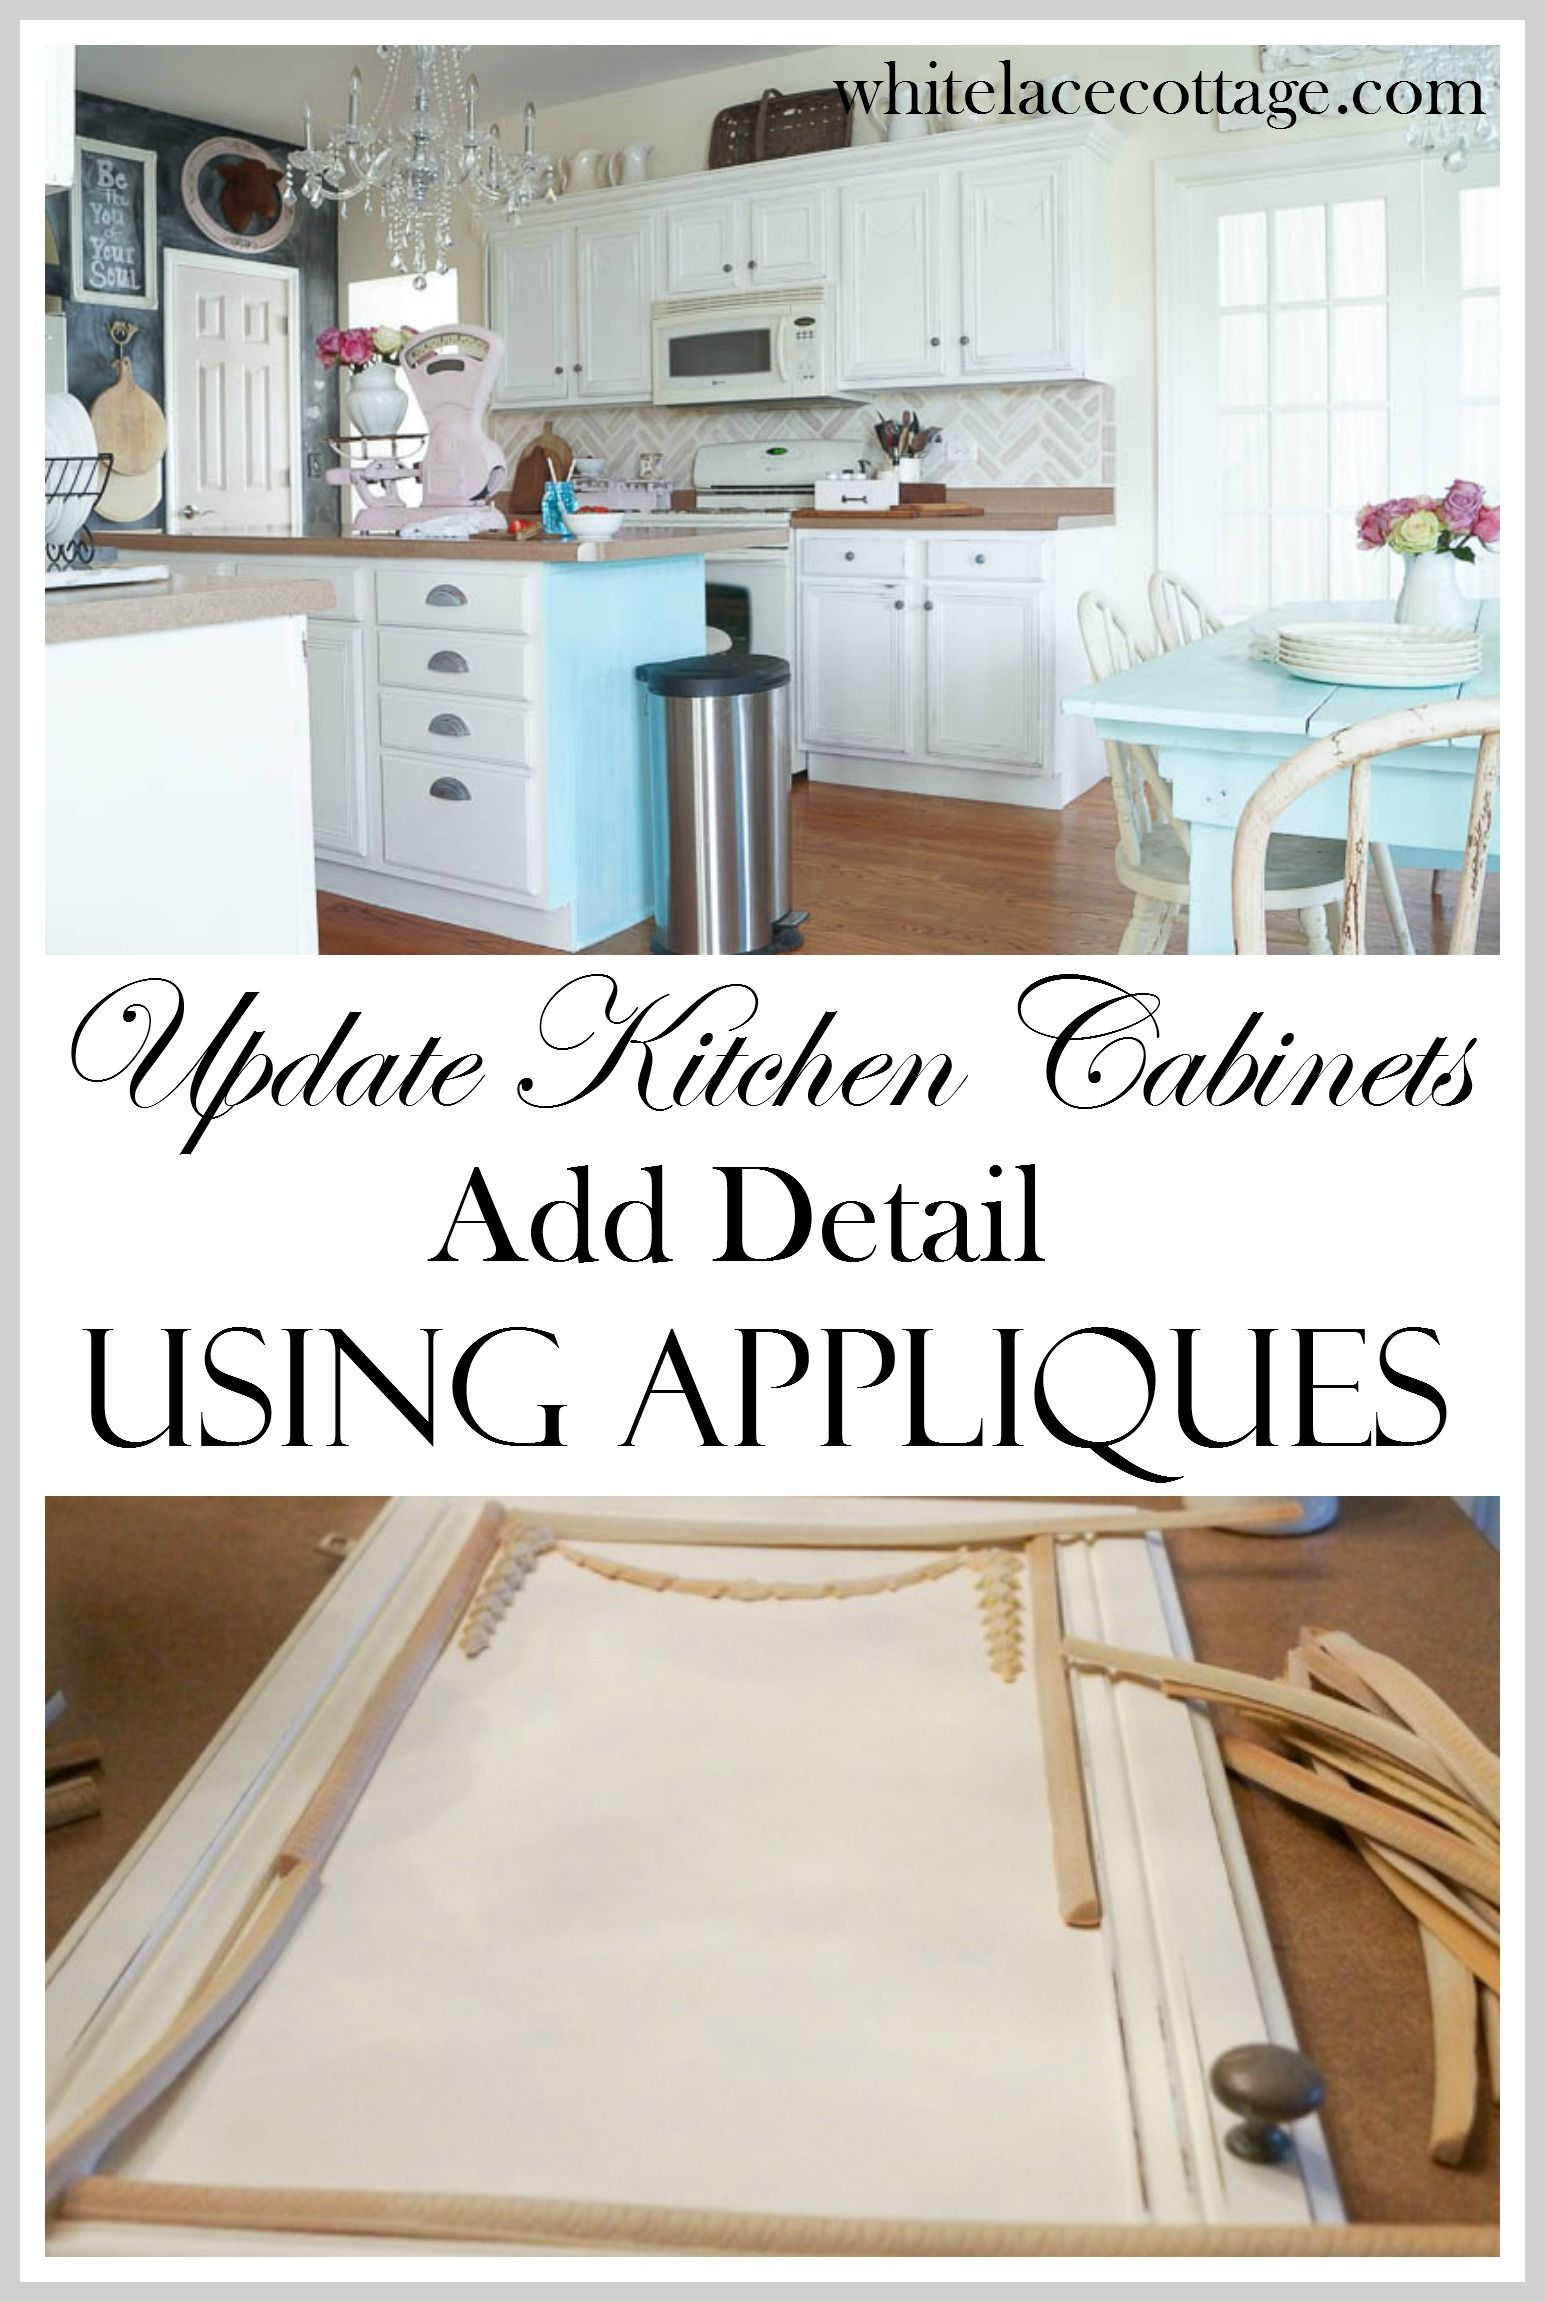 Update Kitchen Cabinets On A Budget Anne P Makeup And More Kitchen Cabinets On A Budget Update Kitchen Cabinets Update Cabinets